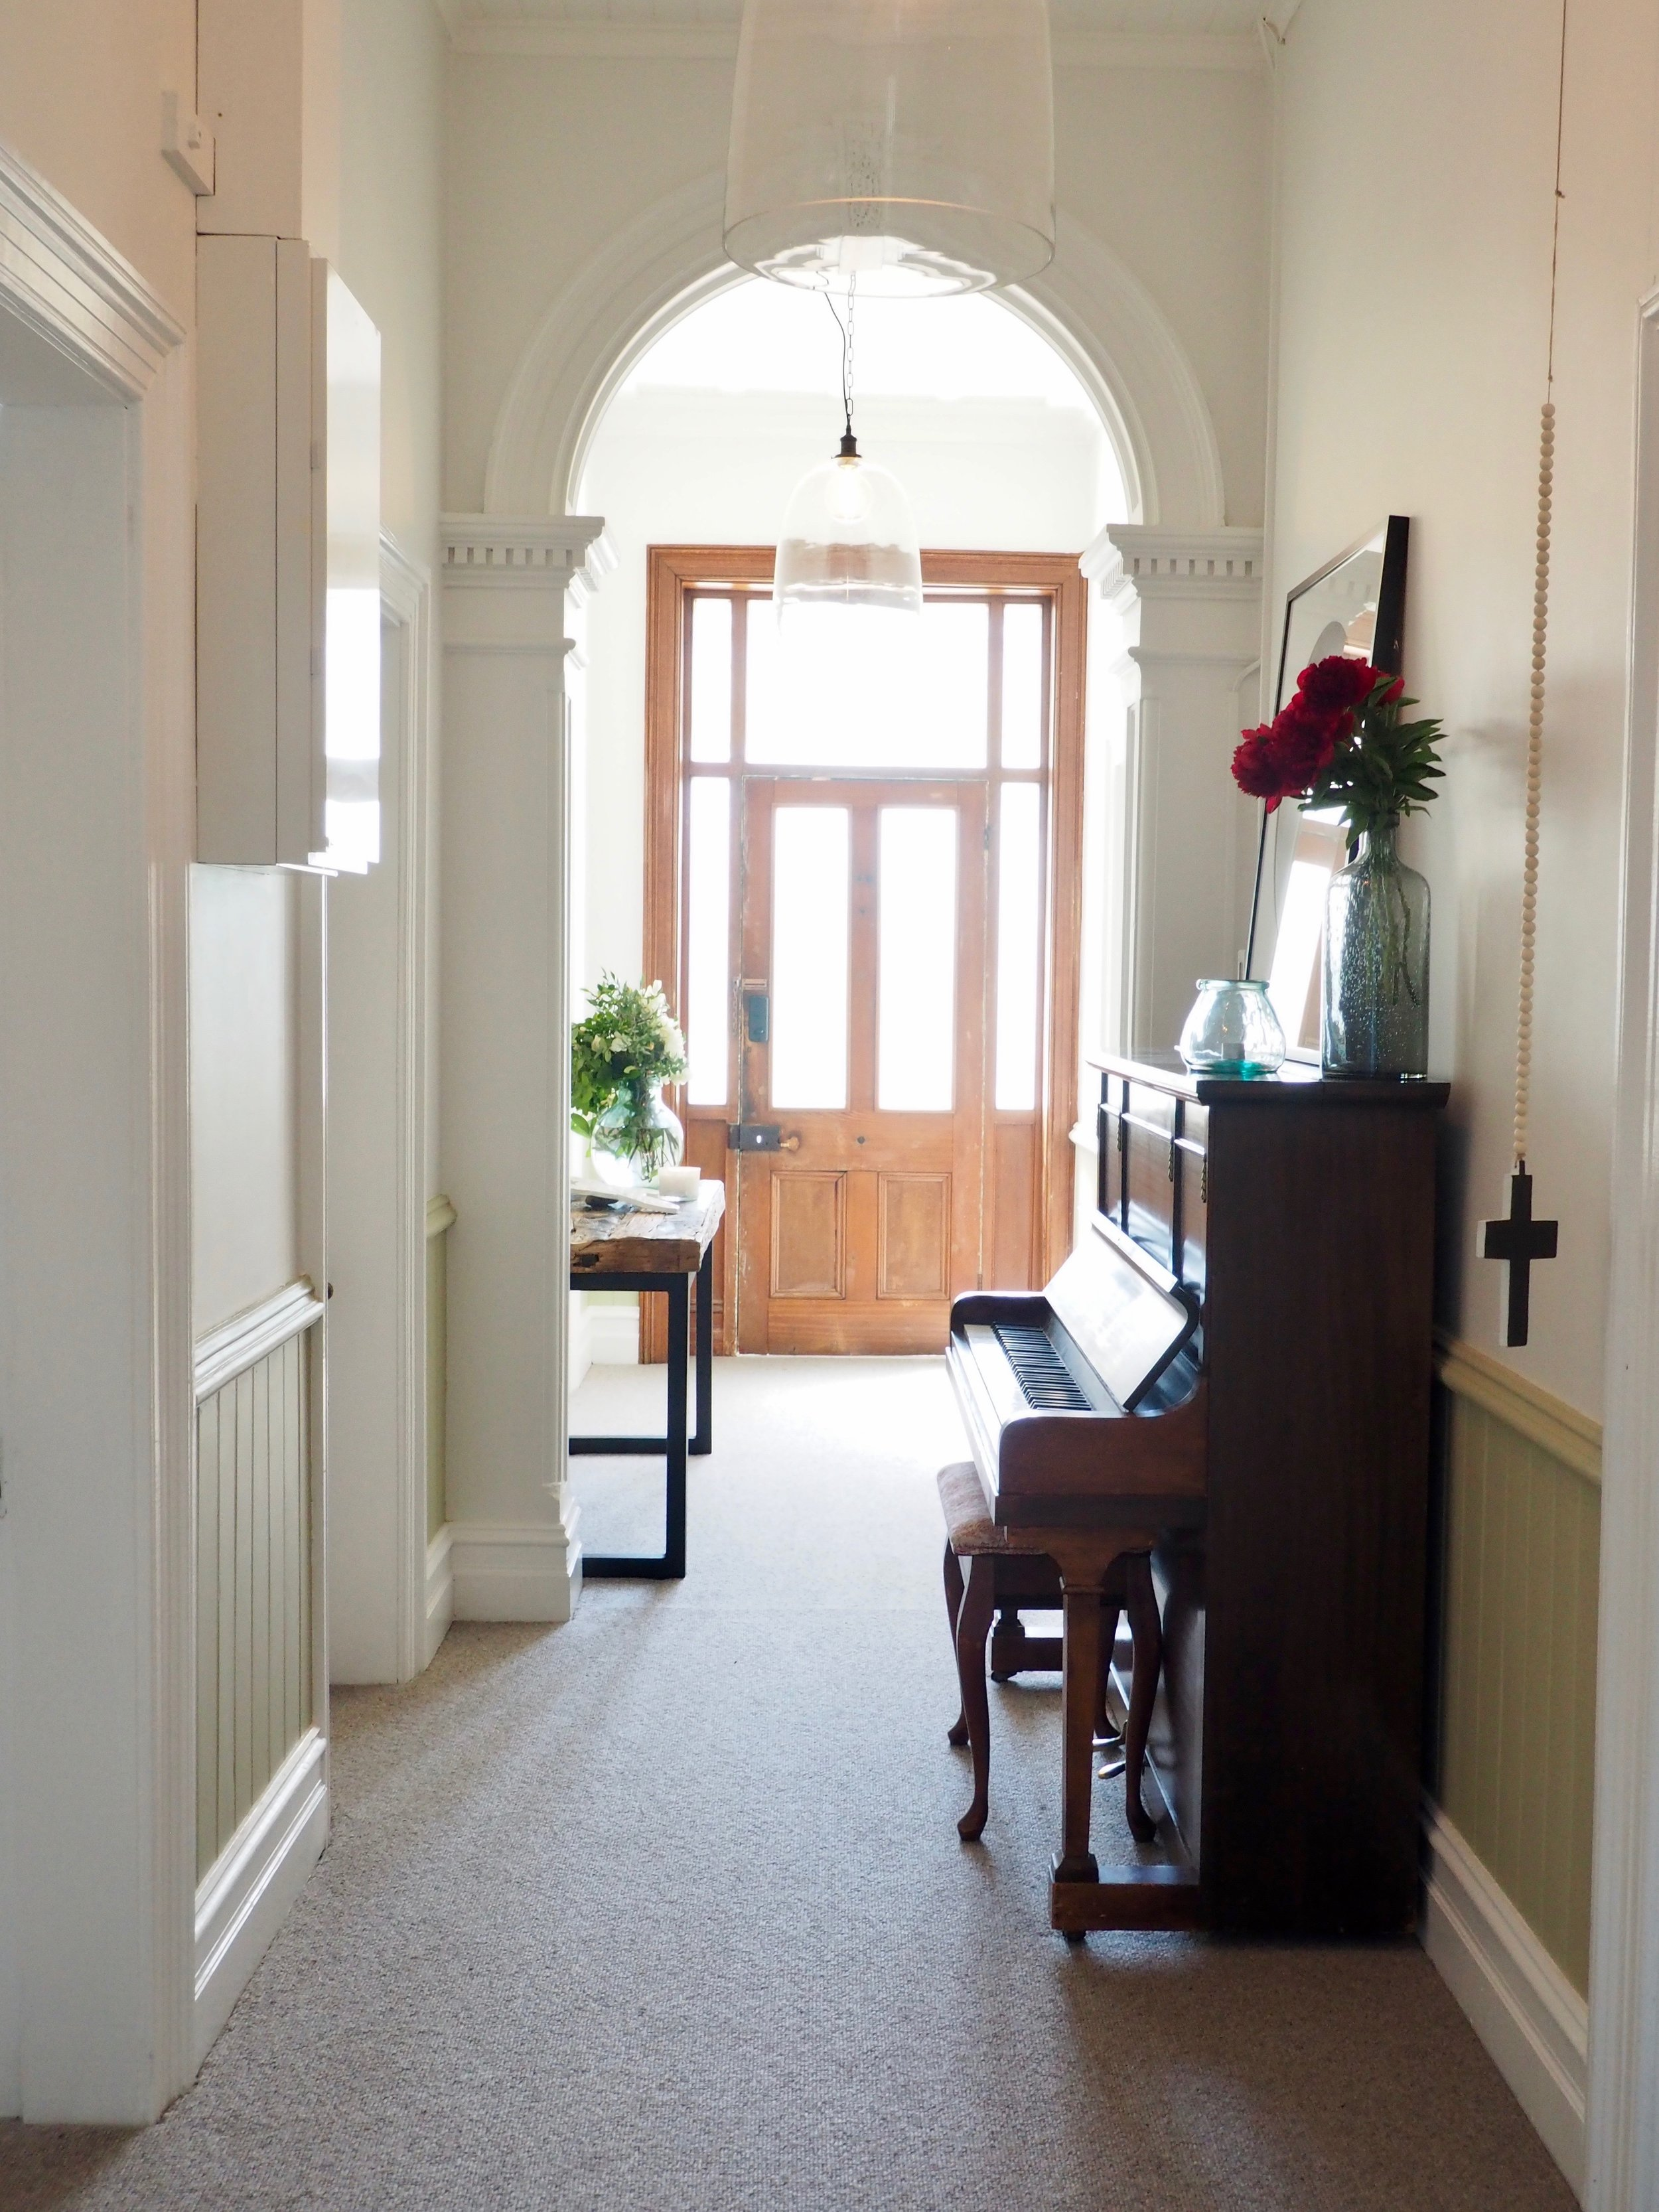 Hallway Reveal Pearson and Projects - 14.jpg